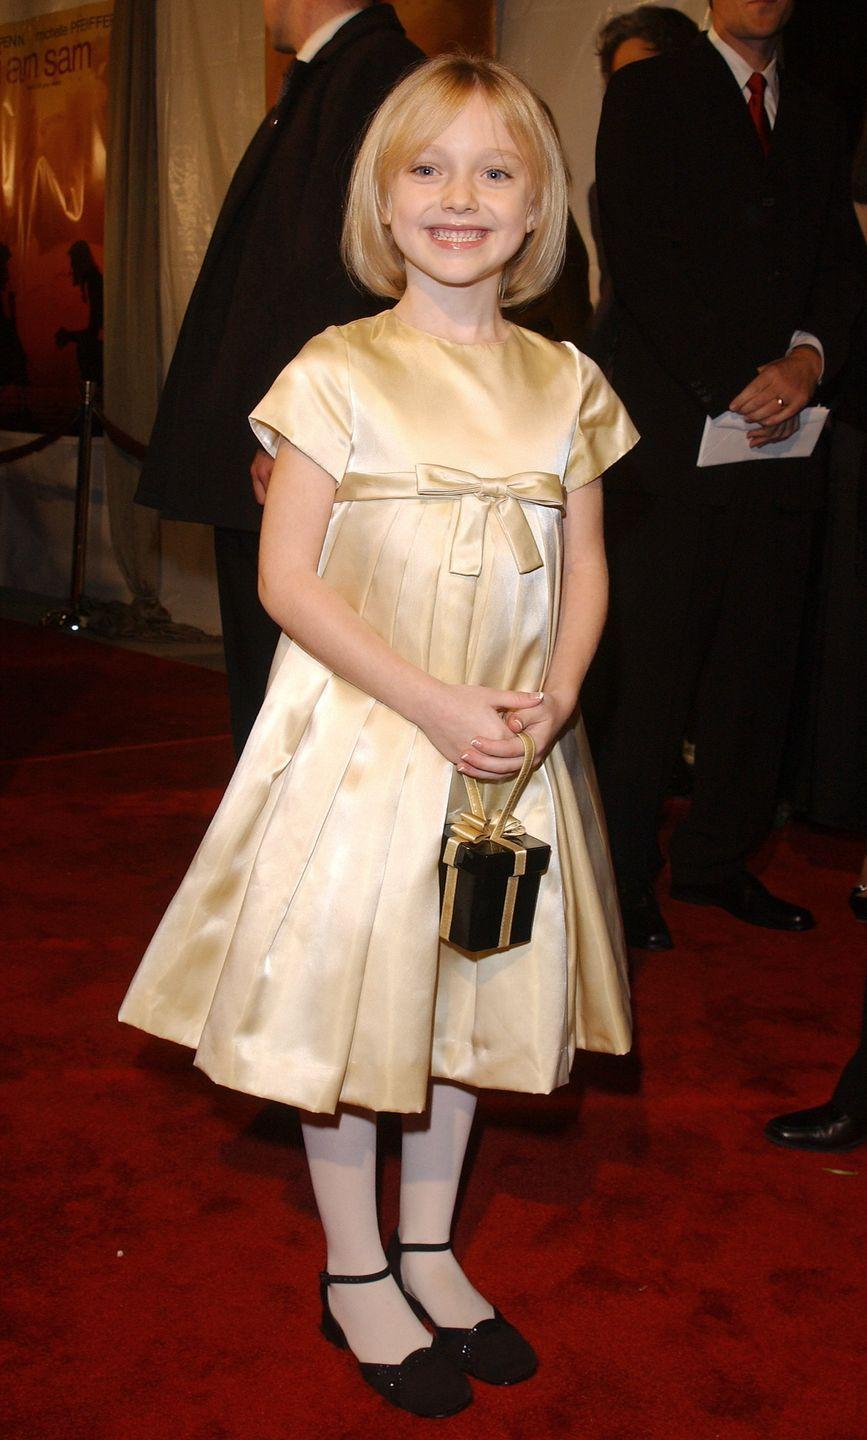 <p>In 2001, the 7-year-old starlet walked her first red carpet at the premiere of <em>I am Sam</em>. She'd go on to star in some of the biggest movies of the decade, including <em>War of the Worlds </em>and <em>Man on Fire.</em></p>